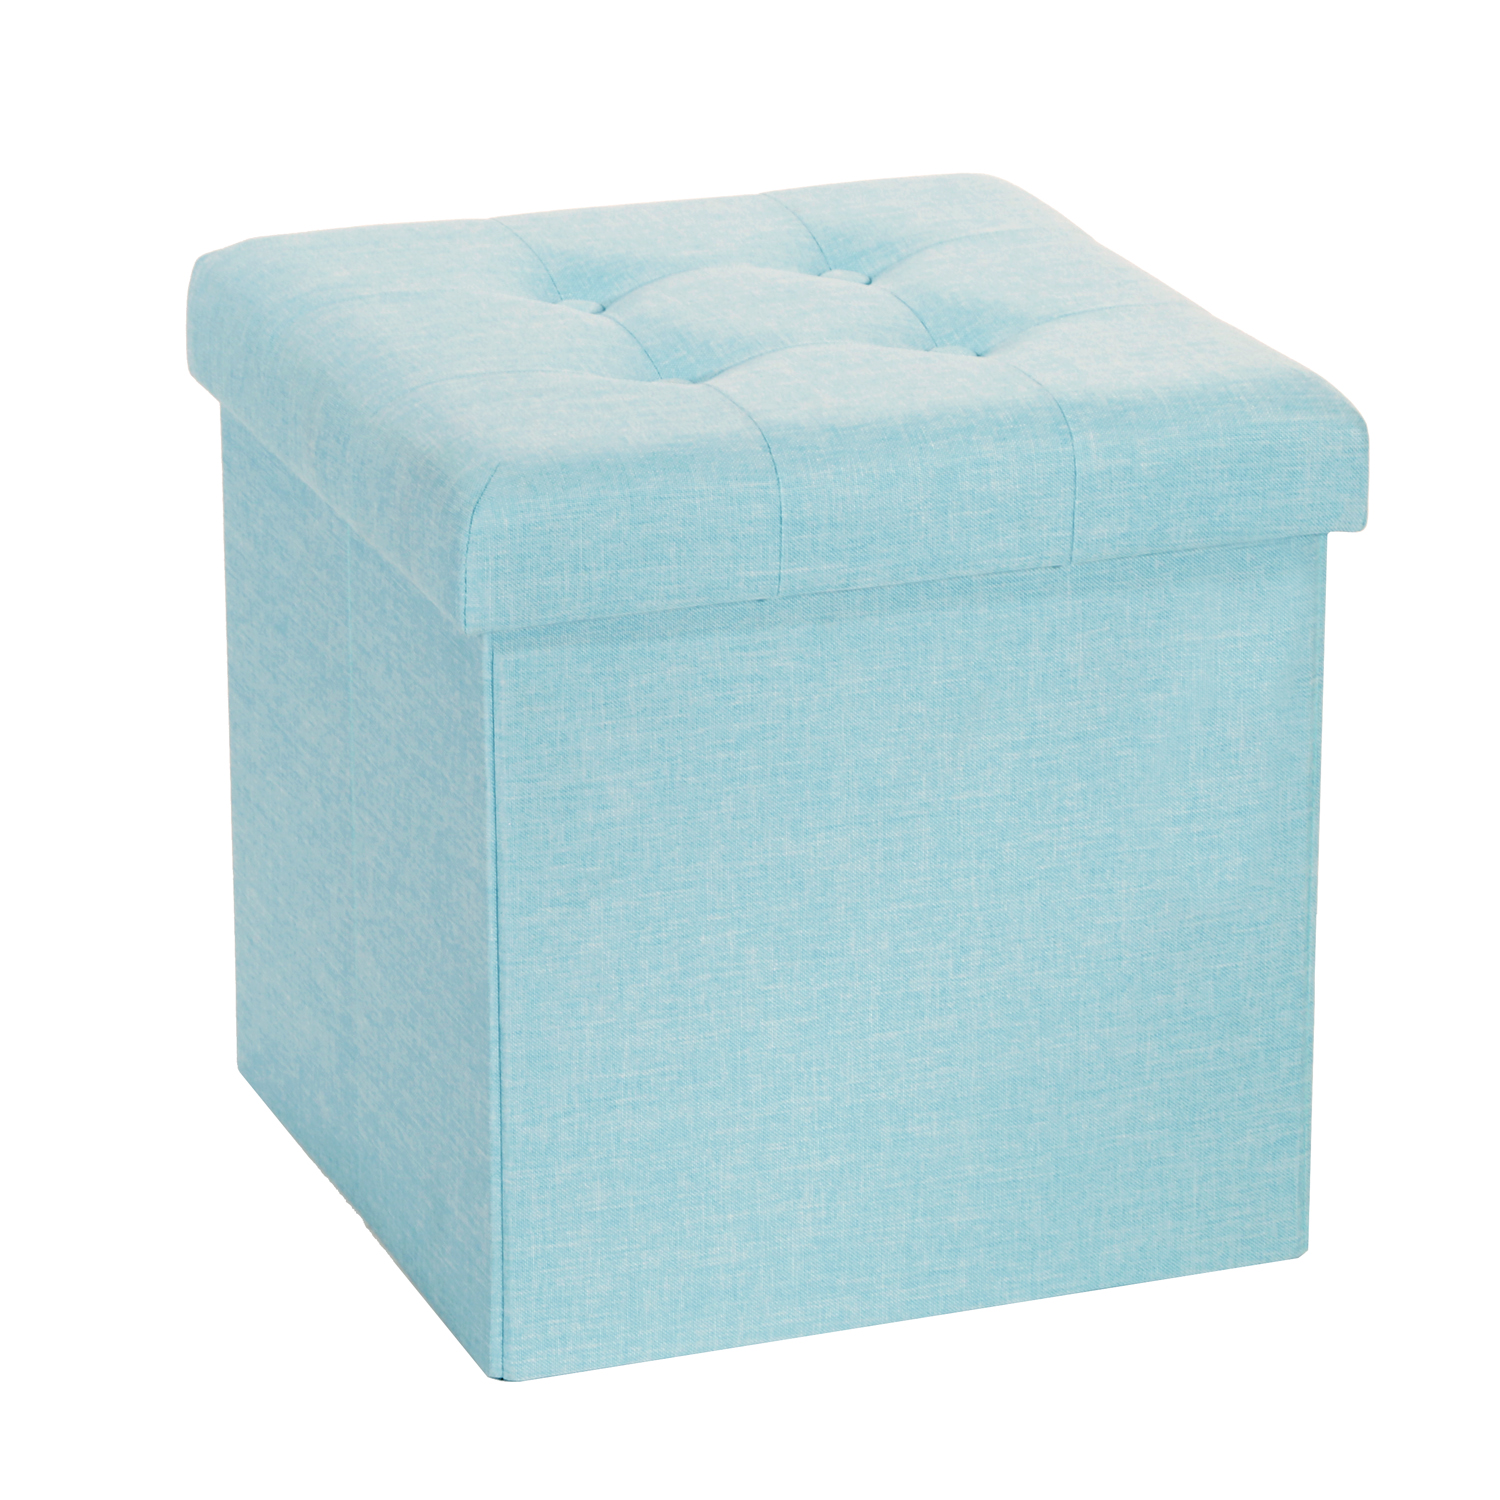 Storage Cube Ottoman | Ottoman Footrest Storage | Padded Storage Box